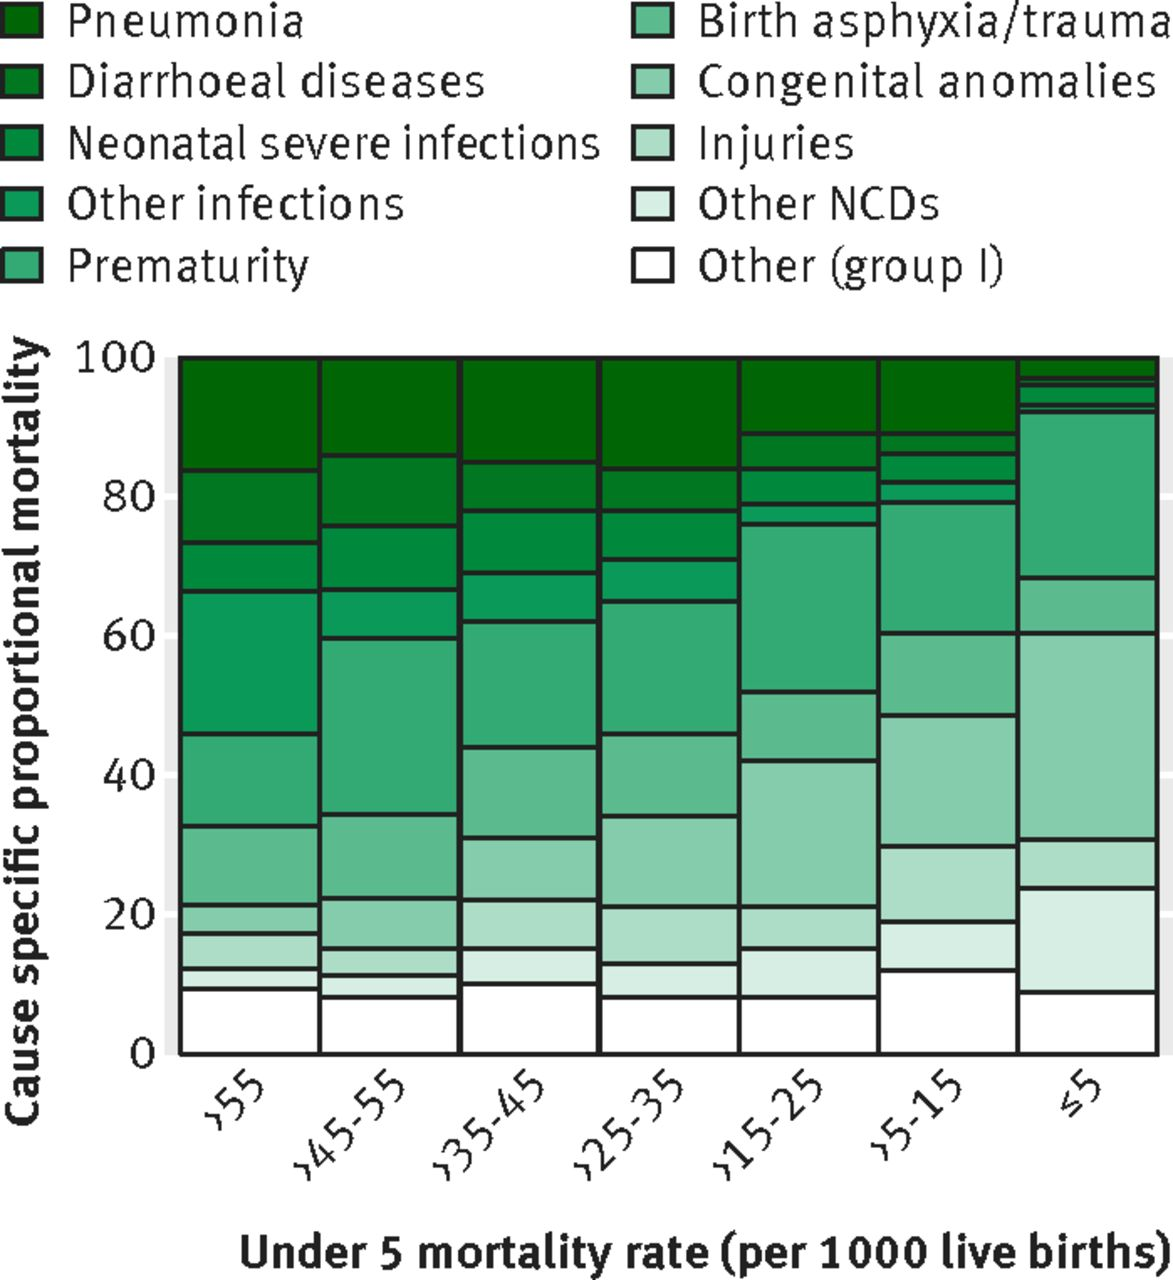 Fig 2 Distribution Of Causes In Children Under 5 According To Levels Mortality Rate Ncd Non Communicable Disease